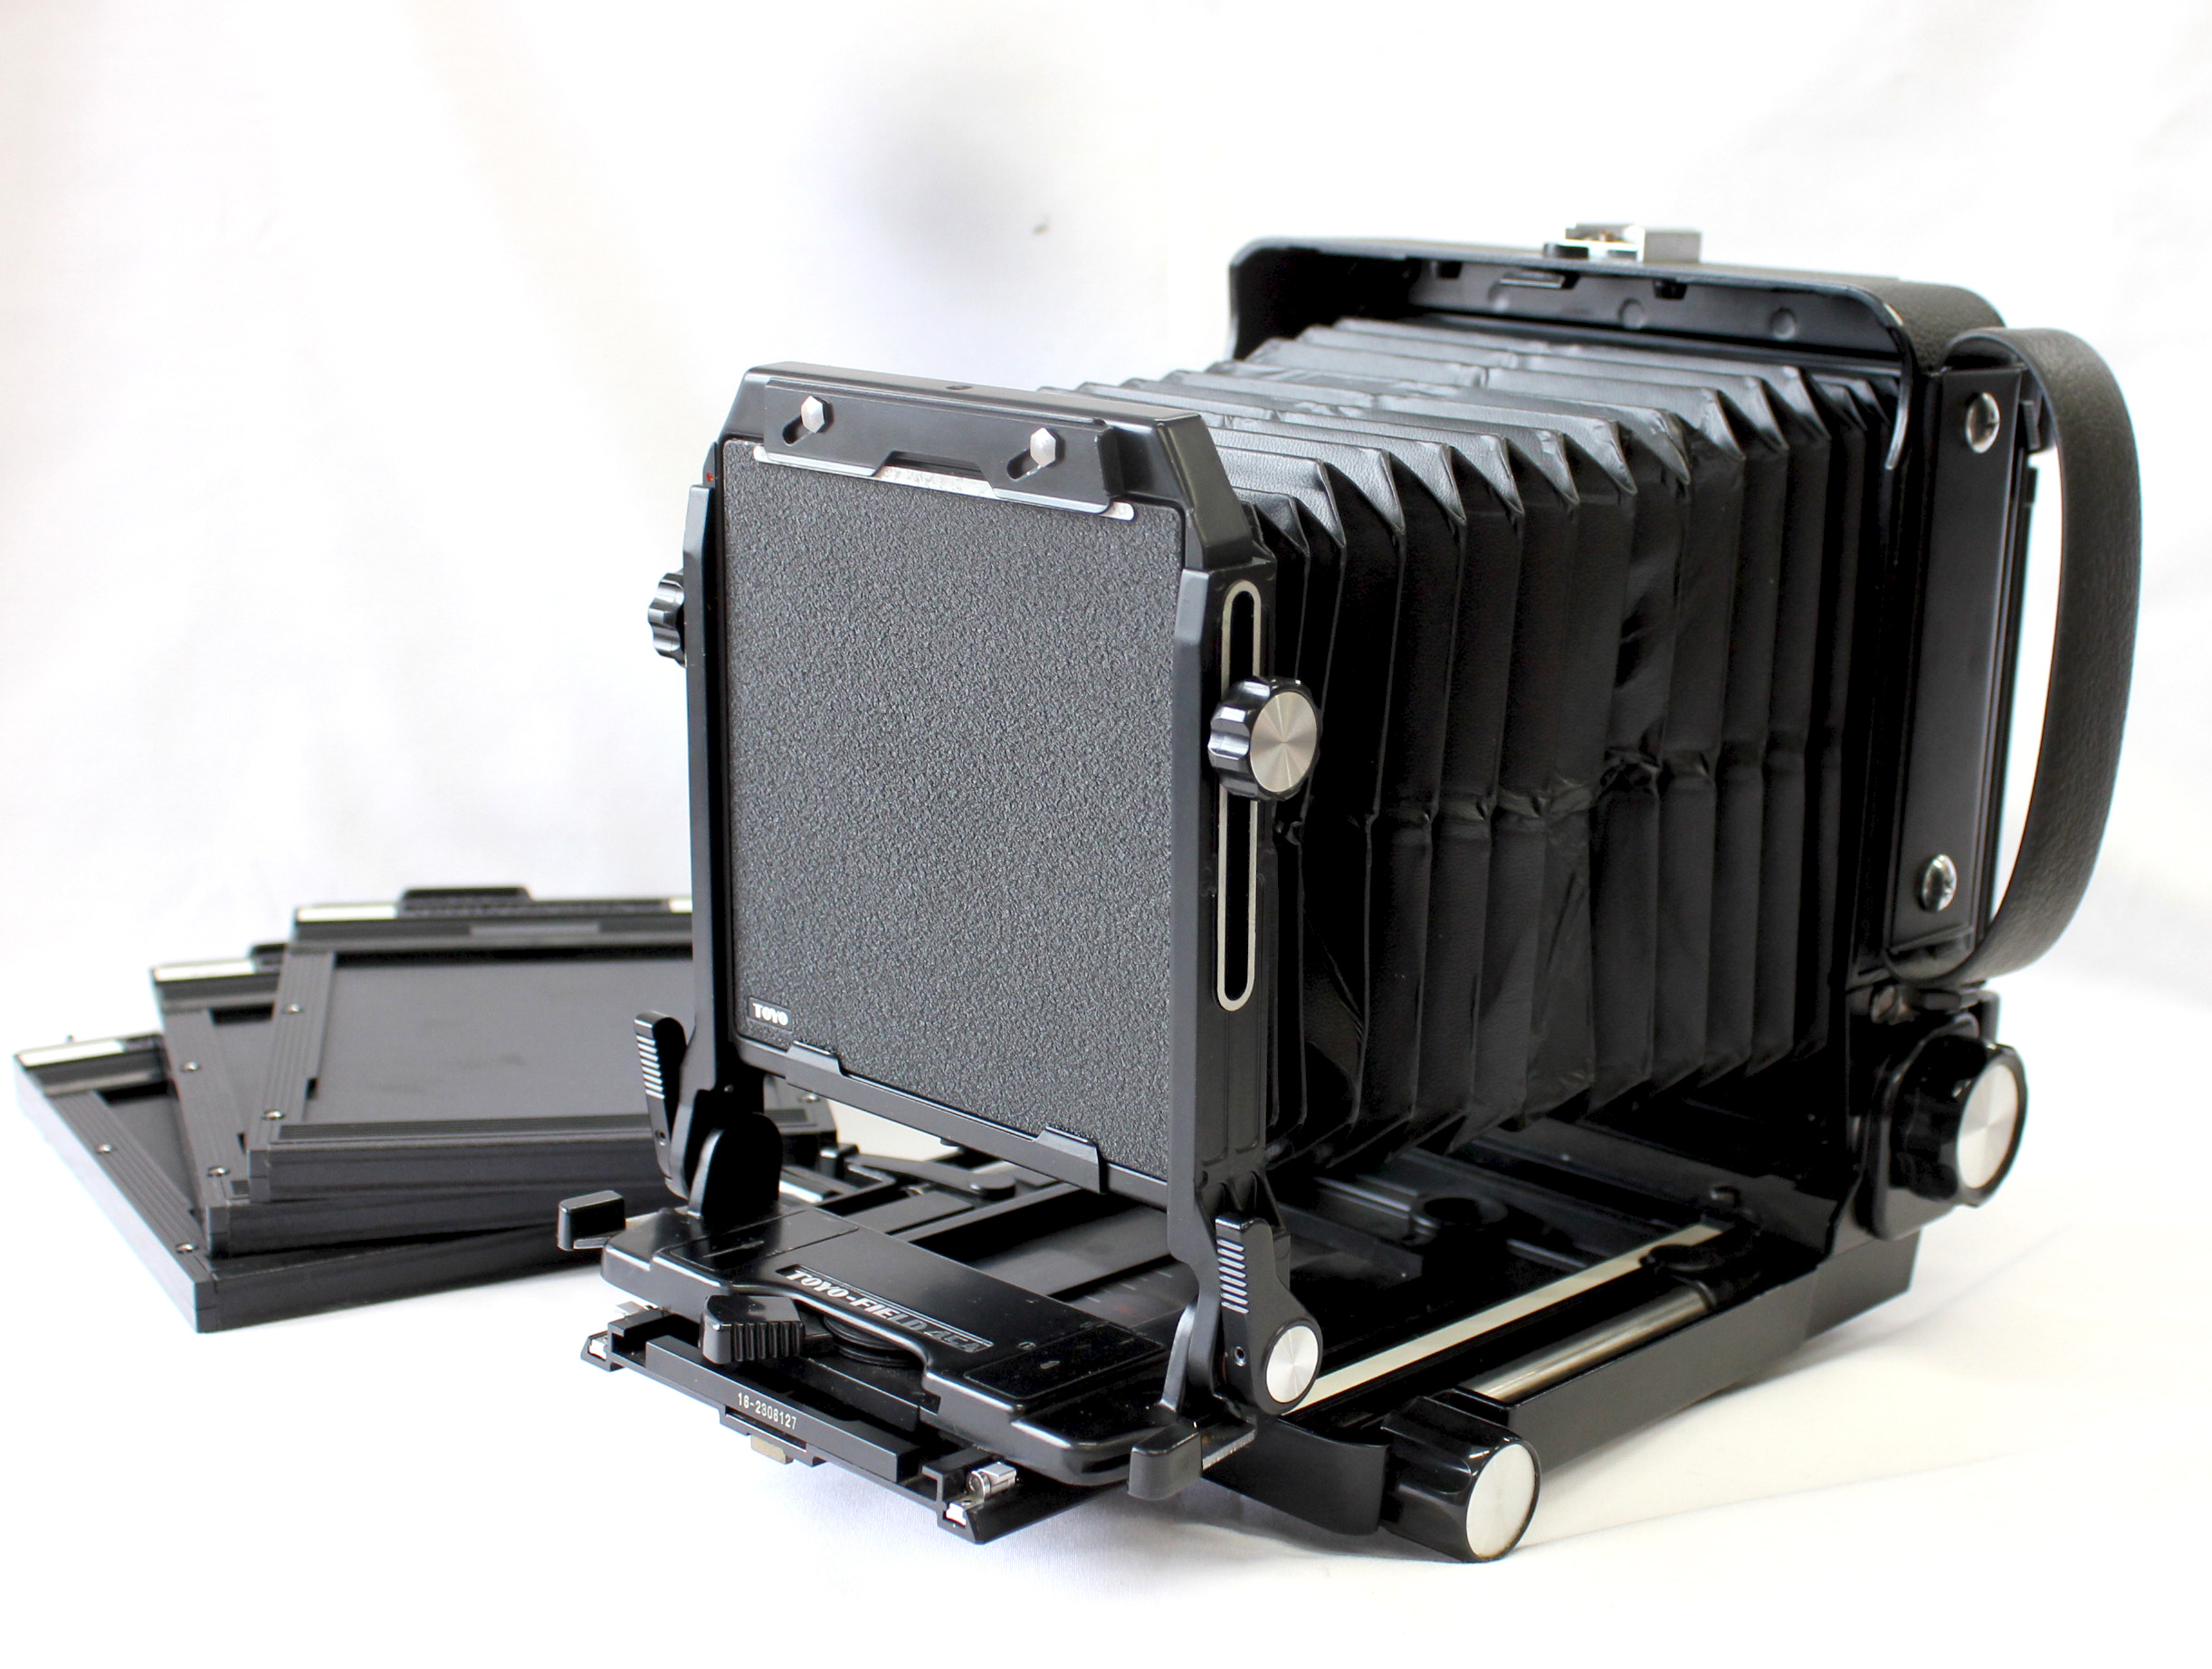 Japan Used Camera Shop | [Excellent+++++] Toyo Field 45A 4x5 Large Format Film Camera with Revolving Back and 3 Cut Film Holders from Japan